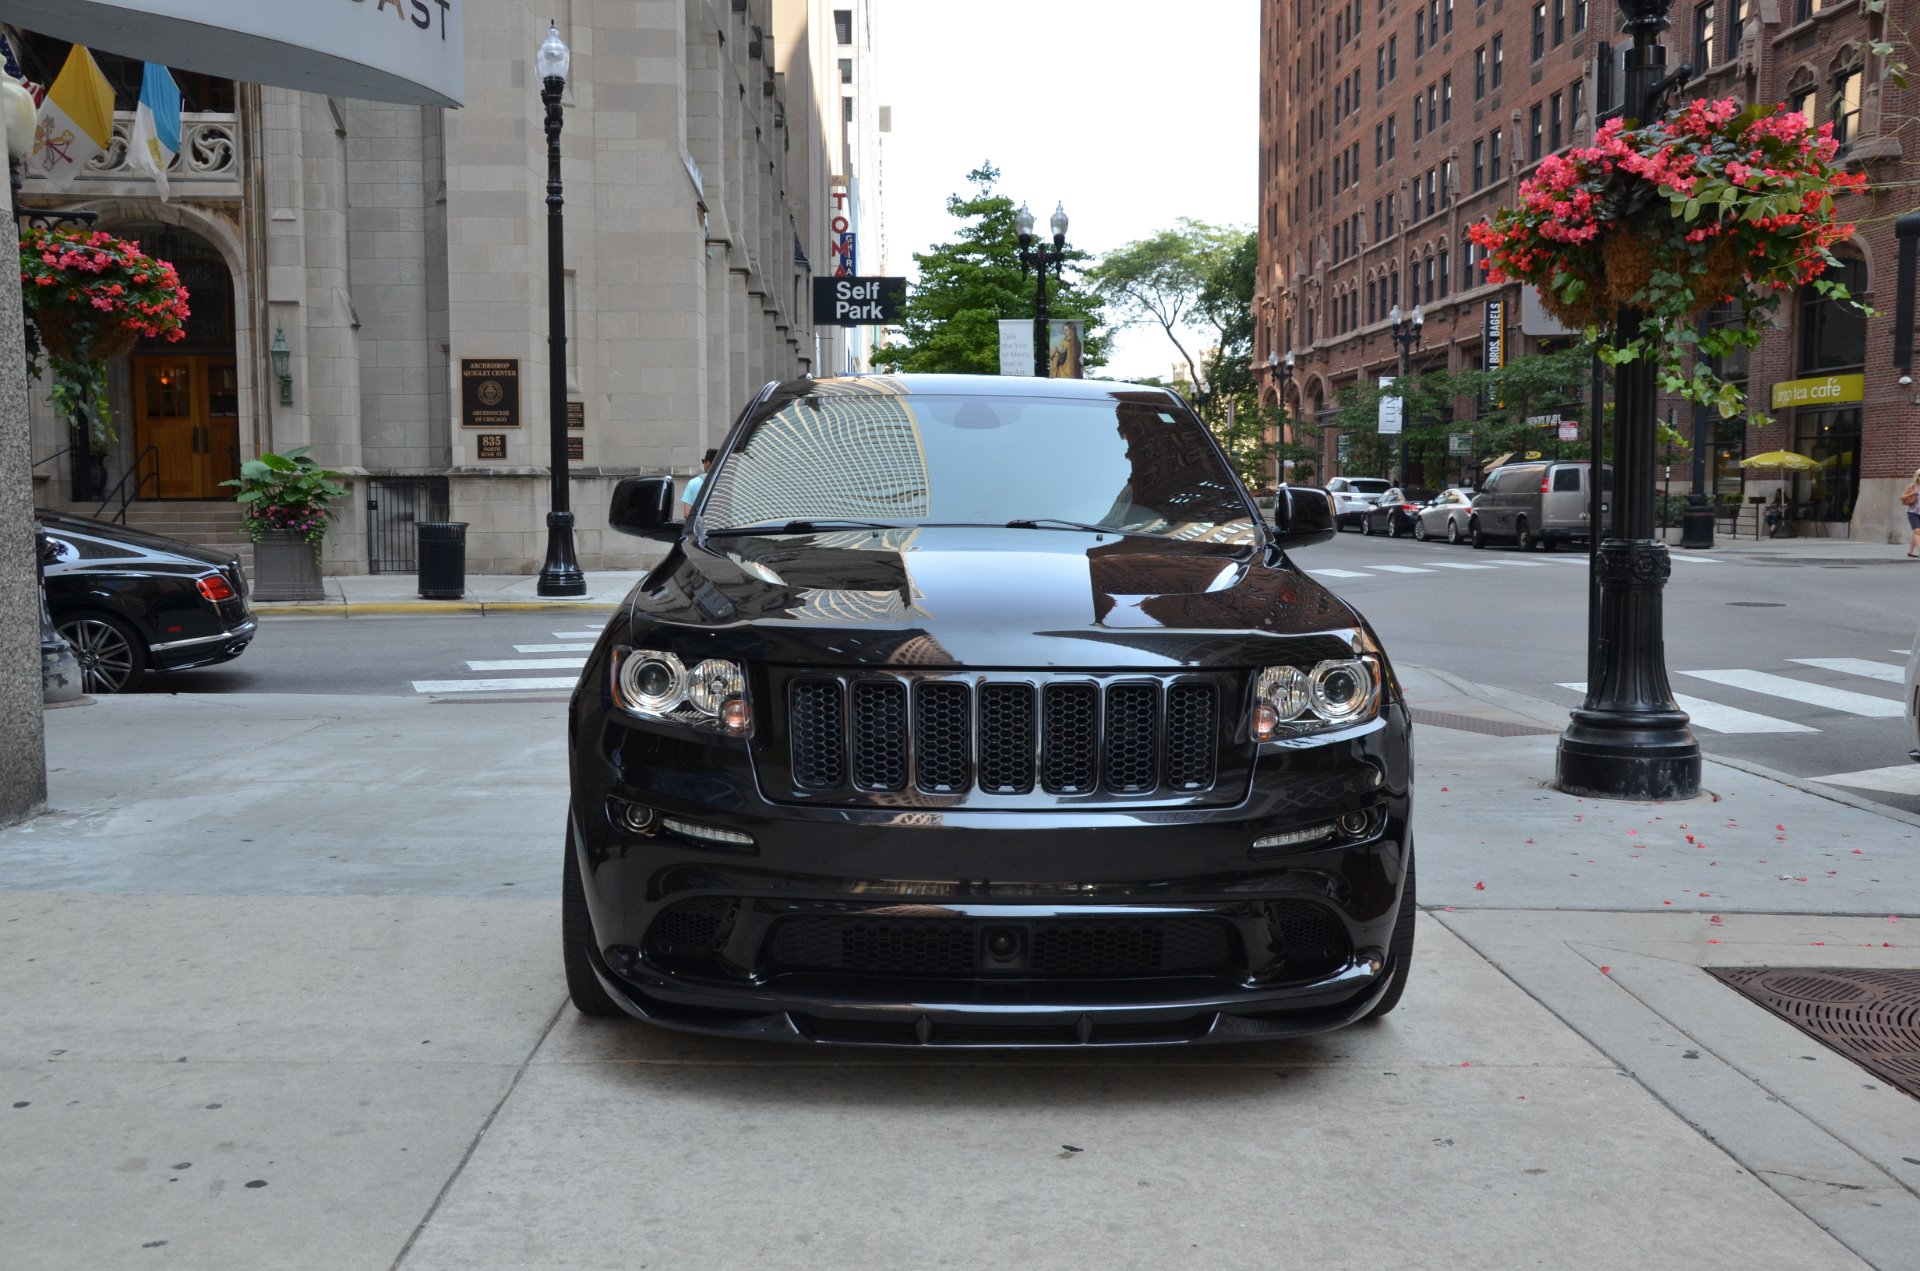 used jeep grand cherokee srt8 for sale in chicago autos post. Black Bedroom Furniture Sets. Home Design Ideas